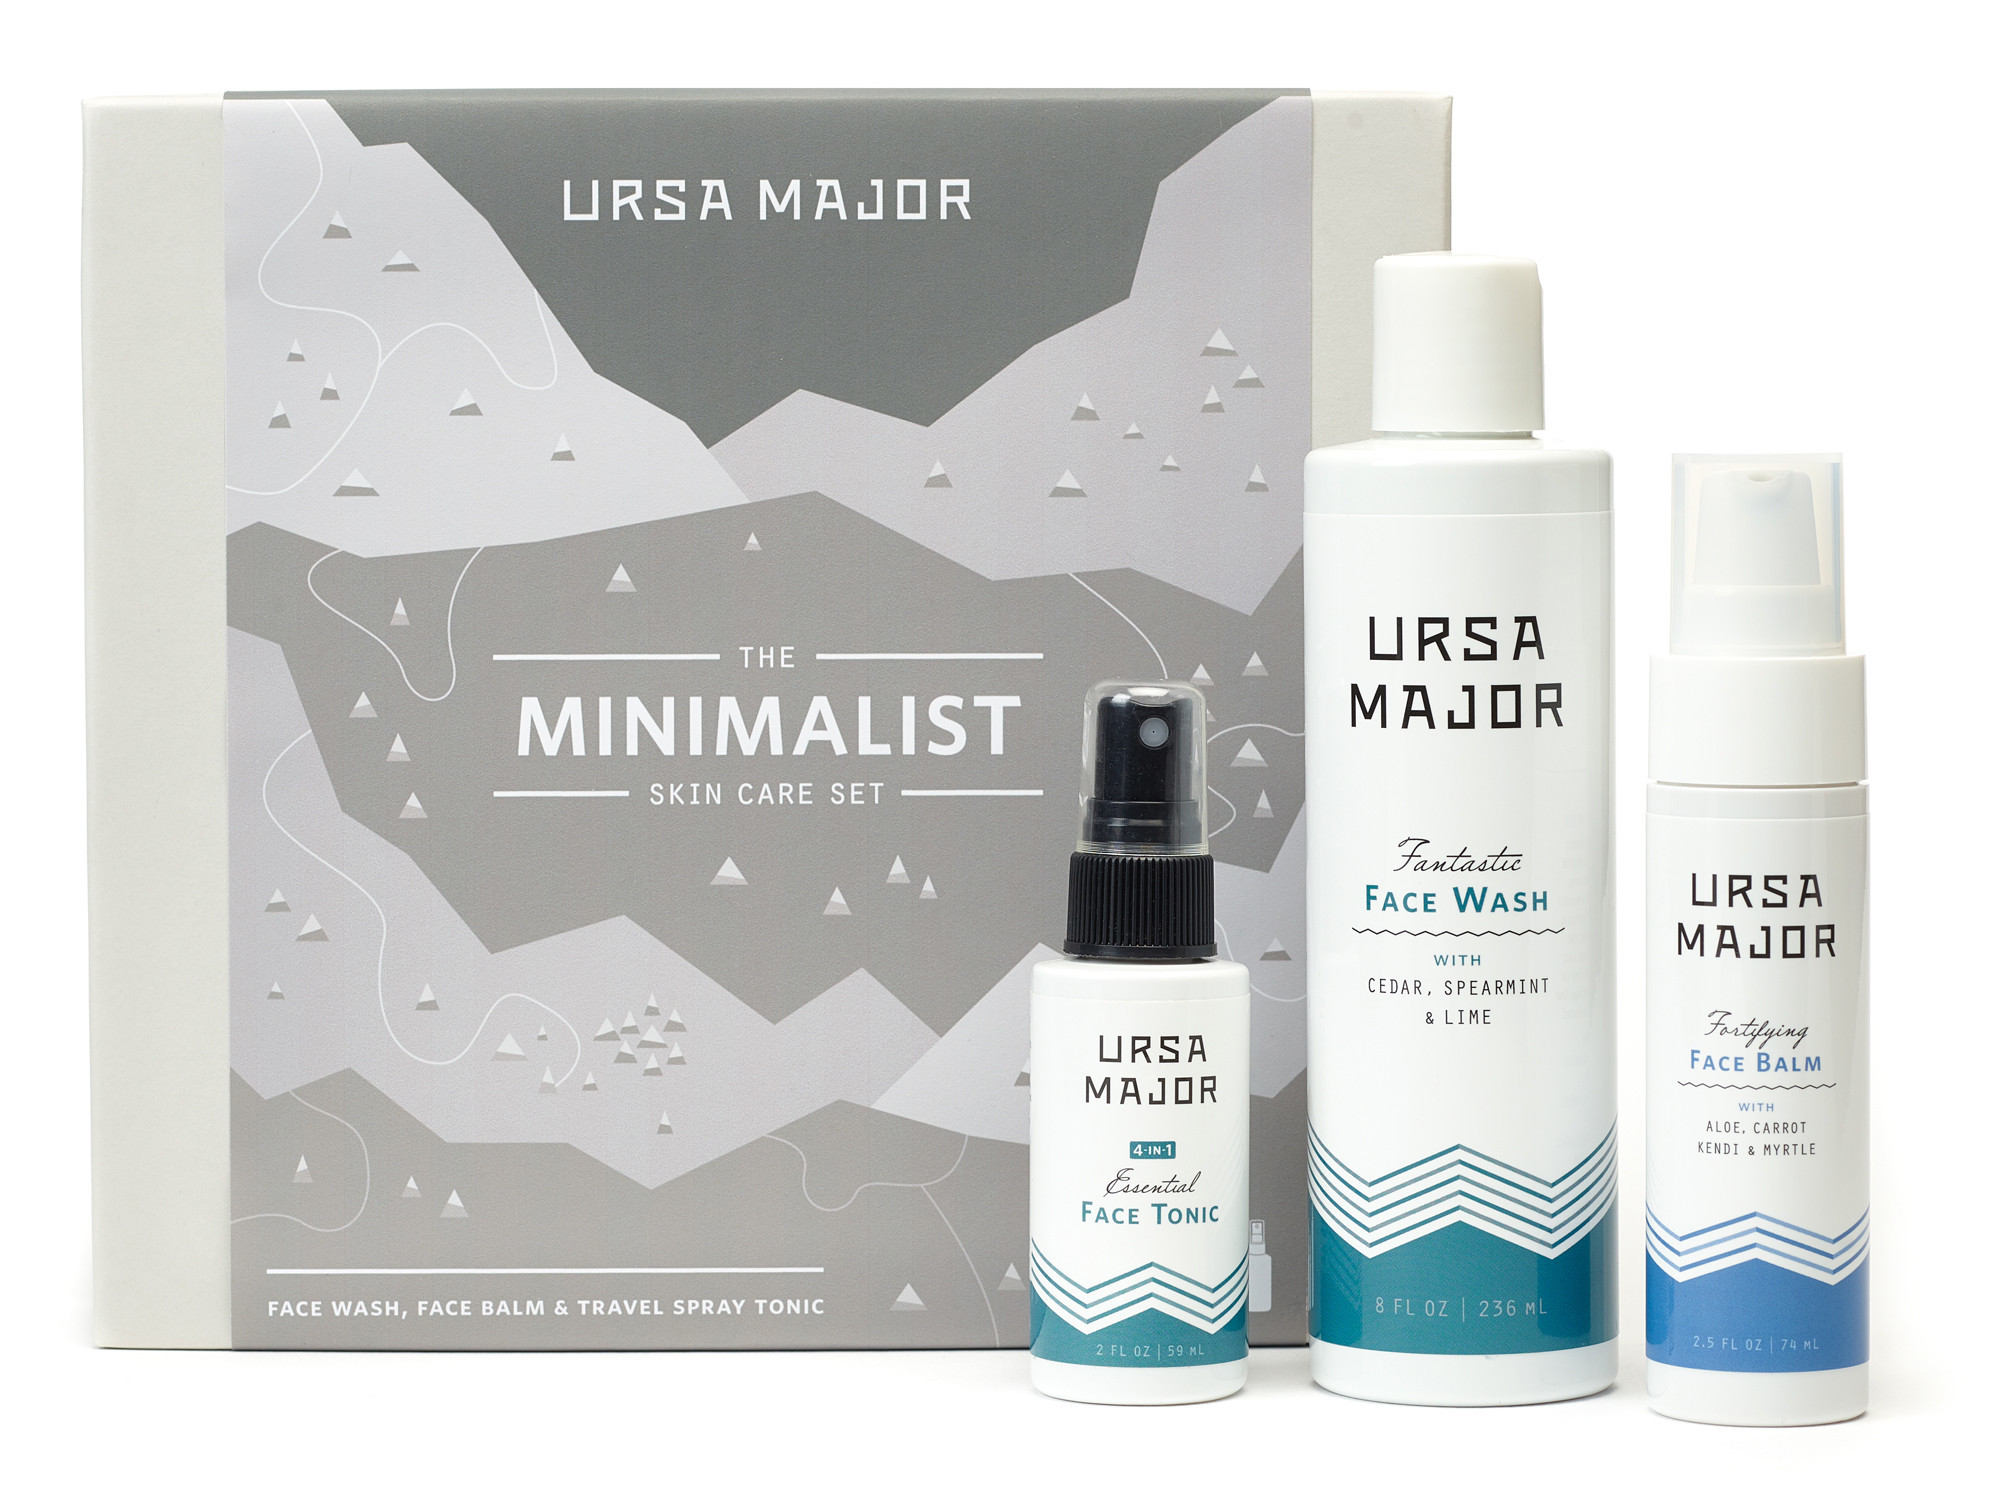 Natural skin care line Ursa Major has packaged a Face Wash, Face Balm, and Essential Face Tonic in a